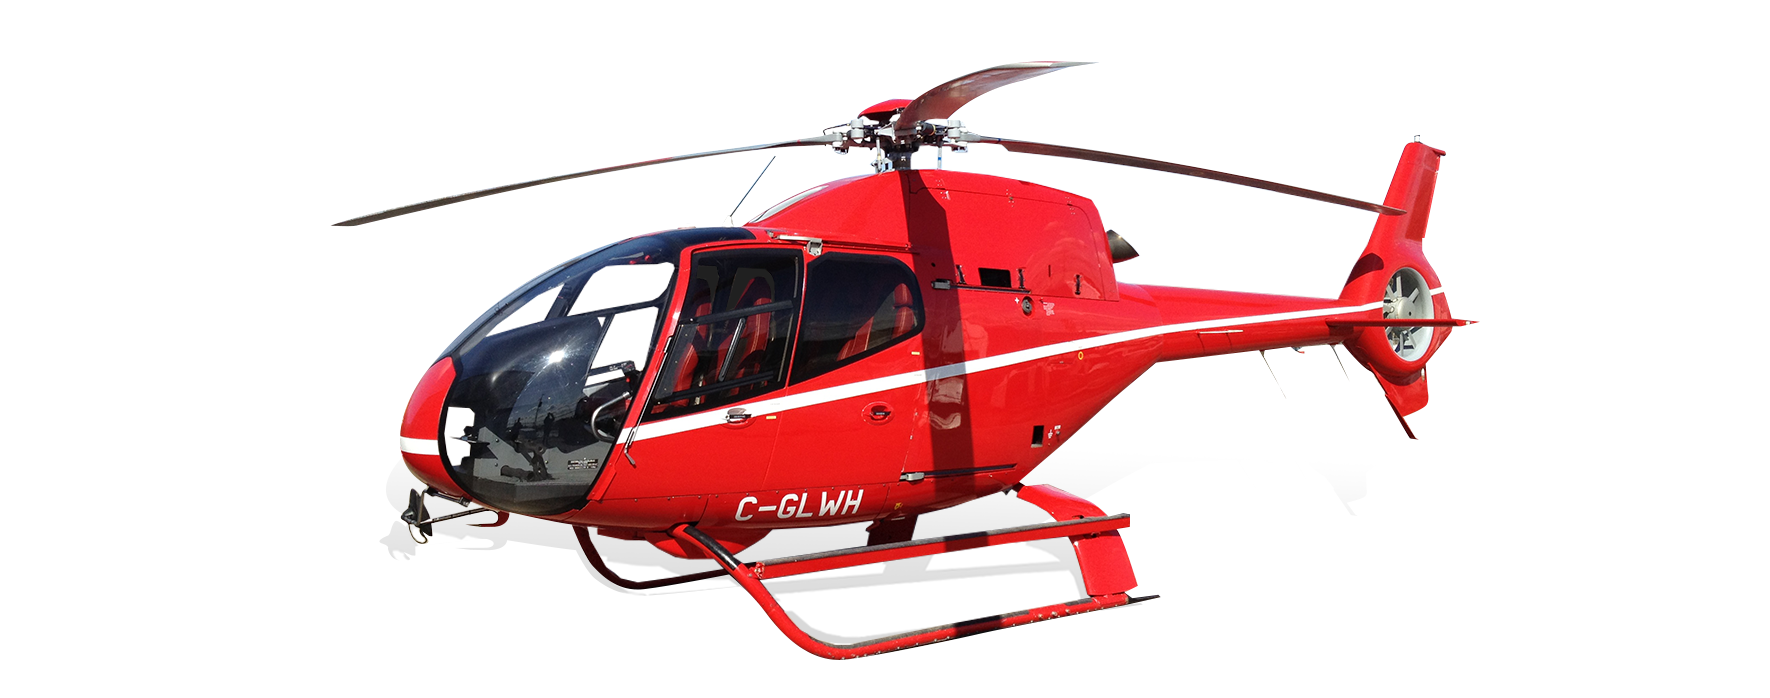 Helicopter png. Transparent picture mart